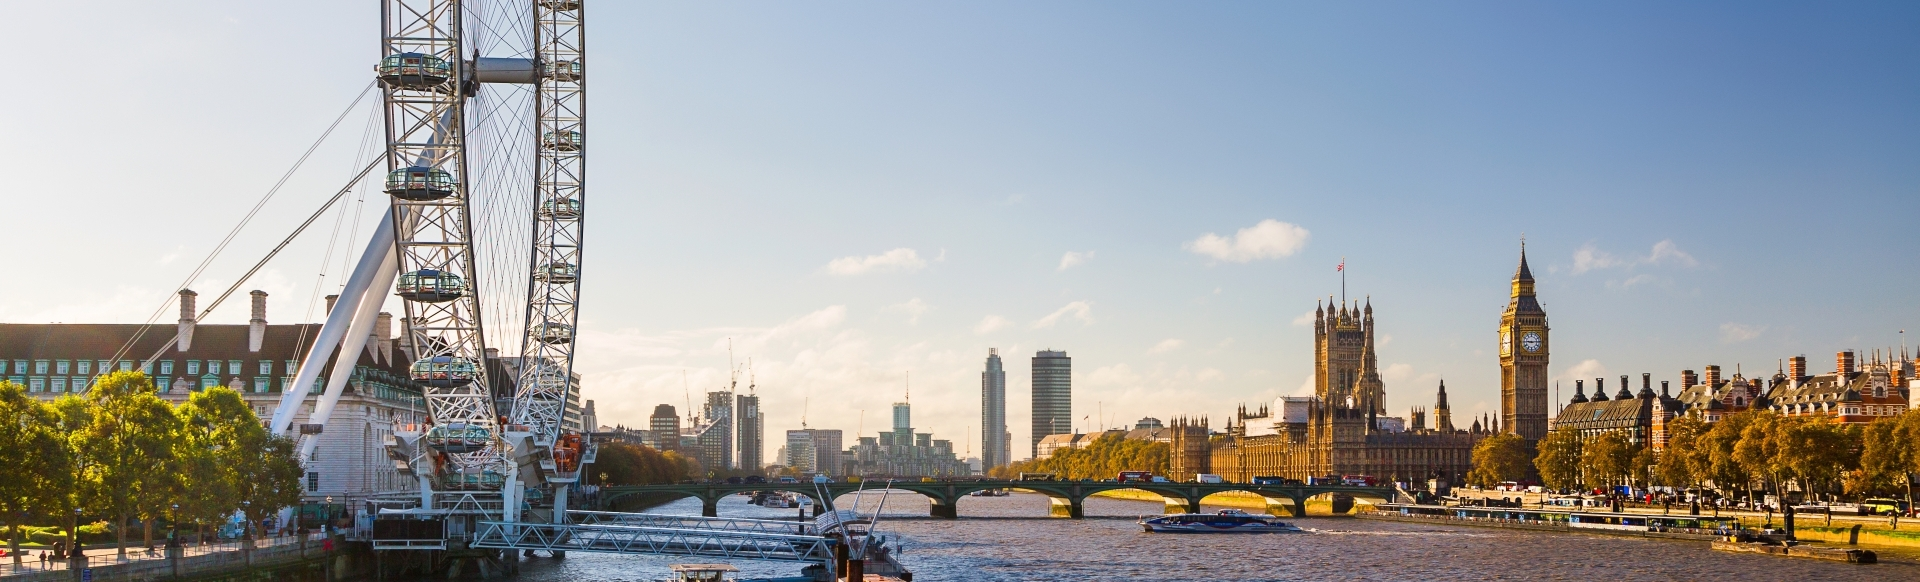 The river Thames on a sunny day, with Westminster in the background.